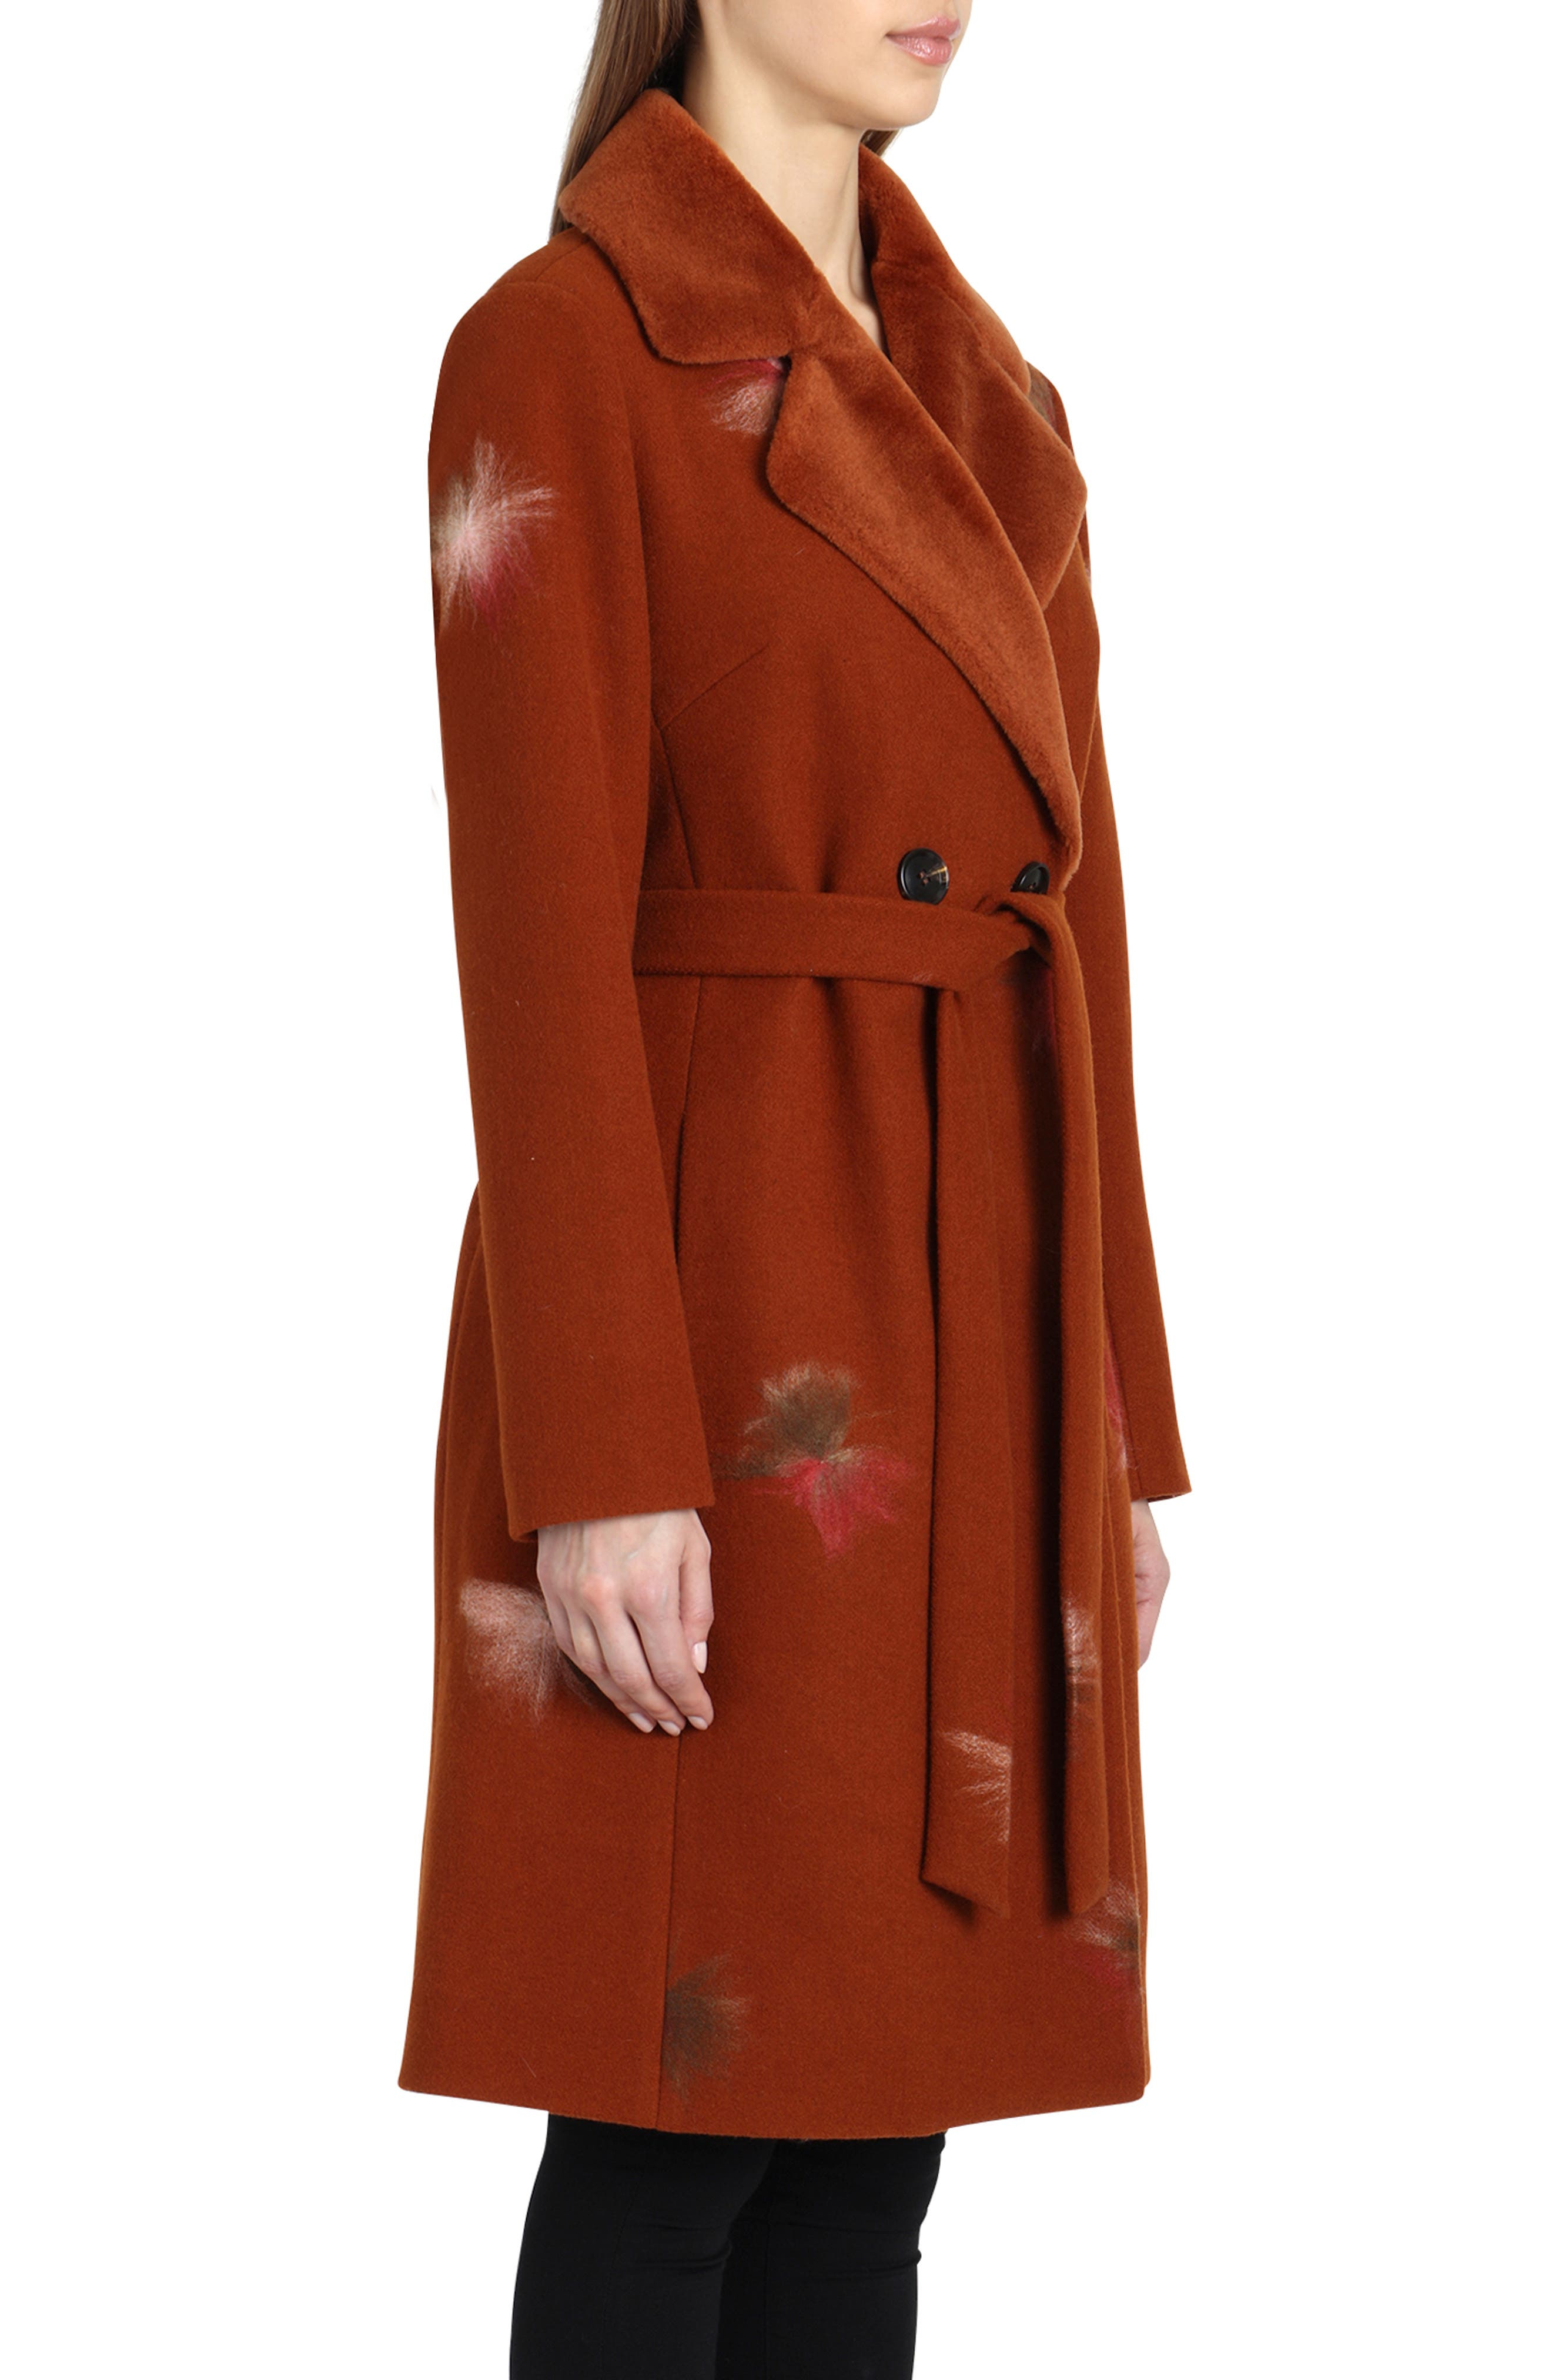 BADGLEY MISCHKA COLLECTION,                             Badgley Mischka Felted Embroidery Wool Blend Coat,                             Alternate thumbnail 3, color,                             801